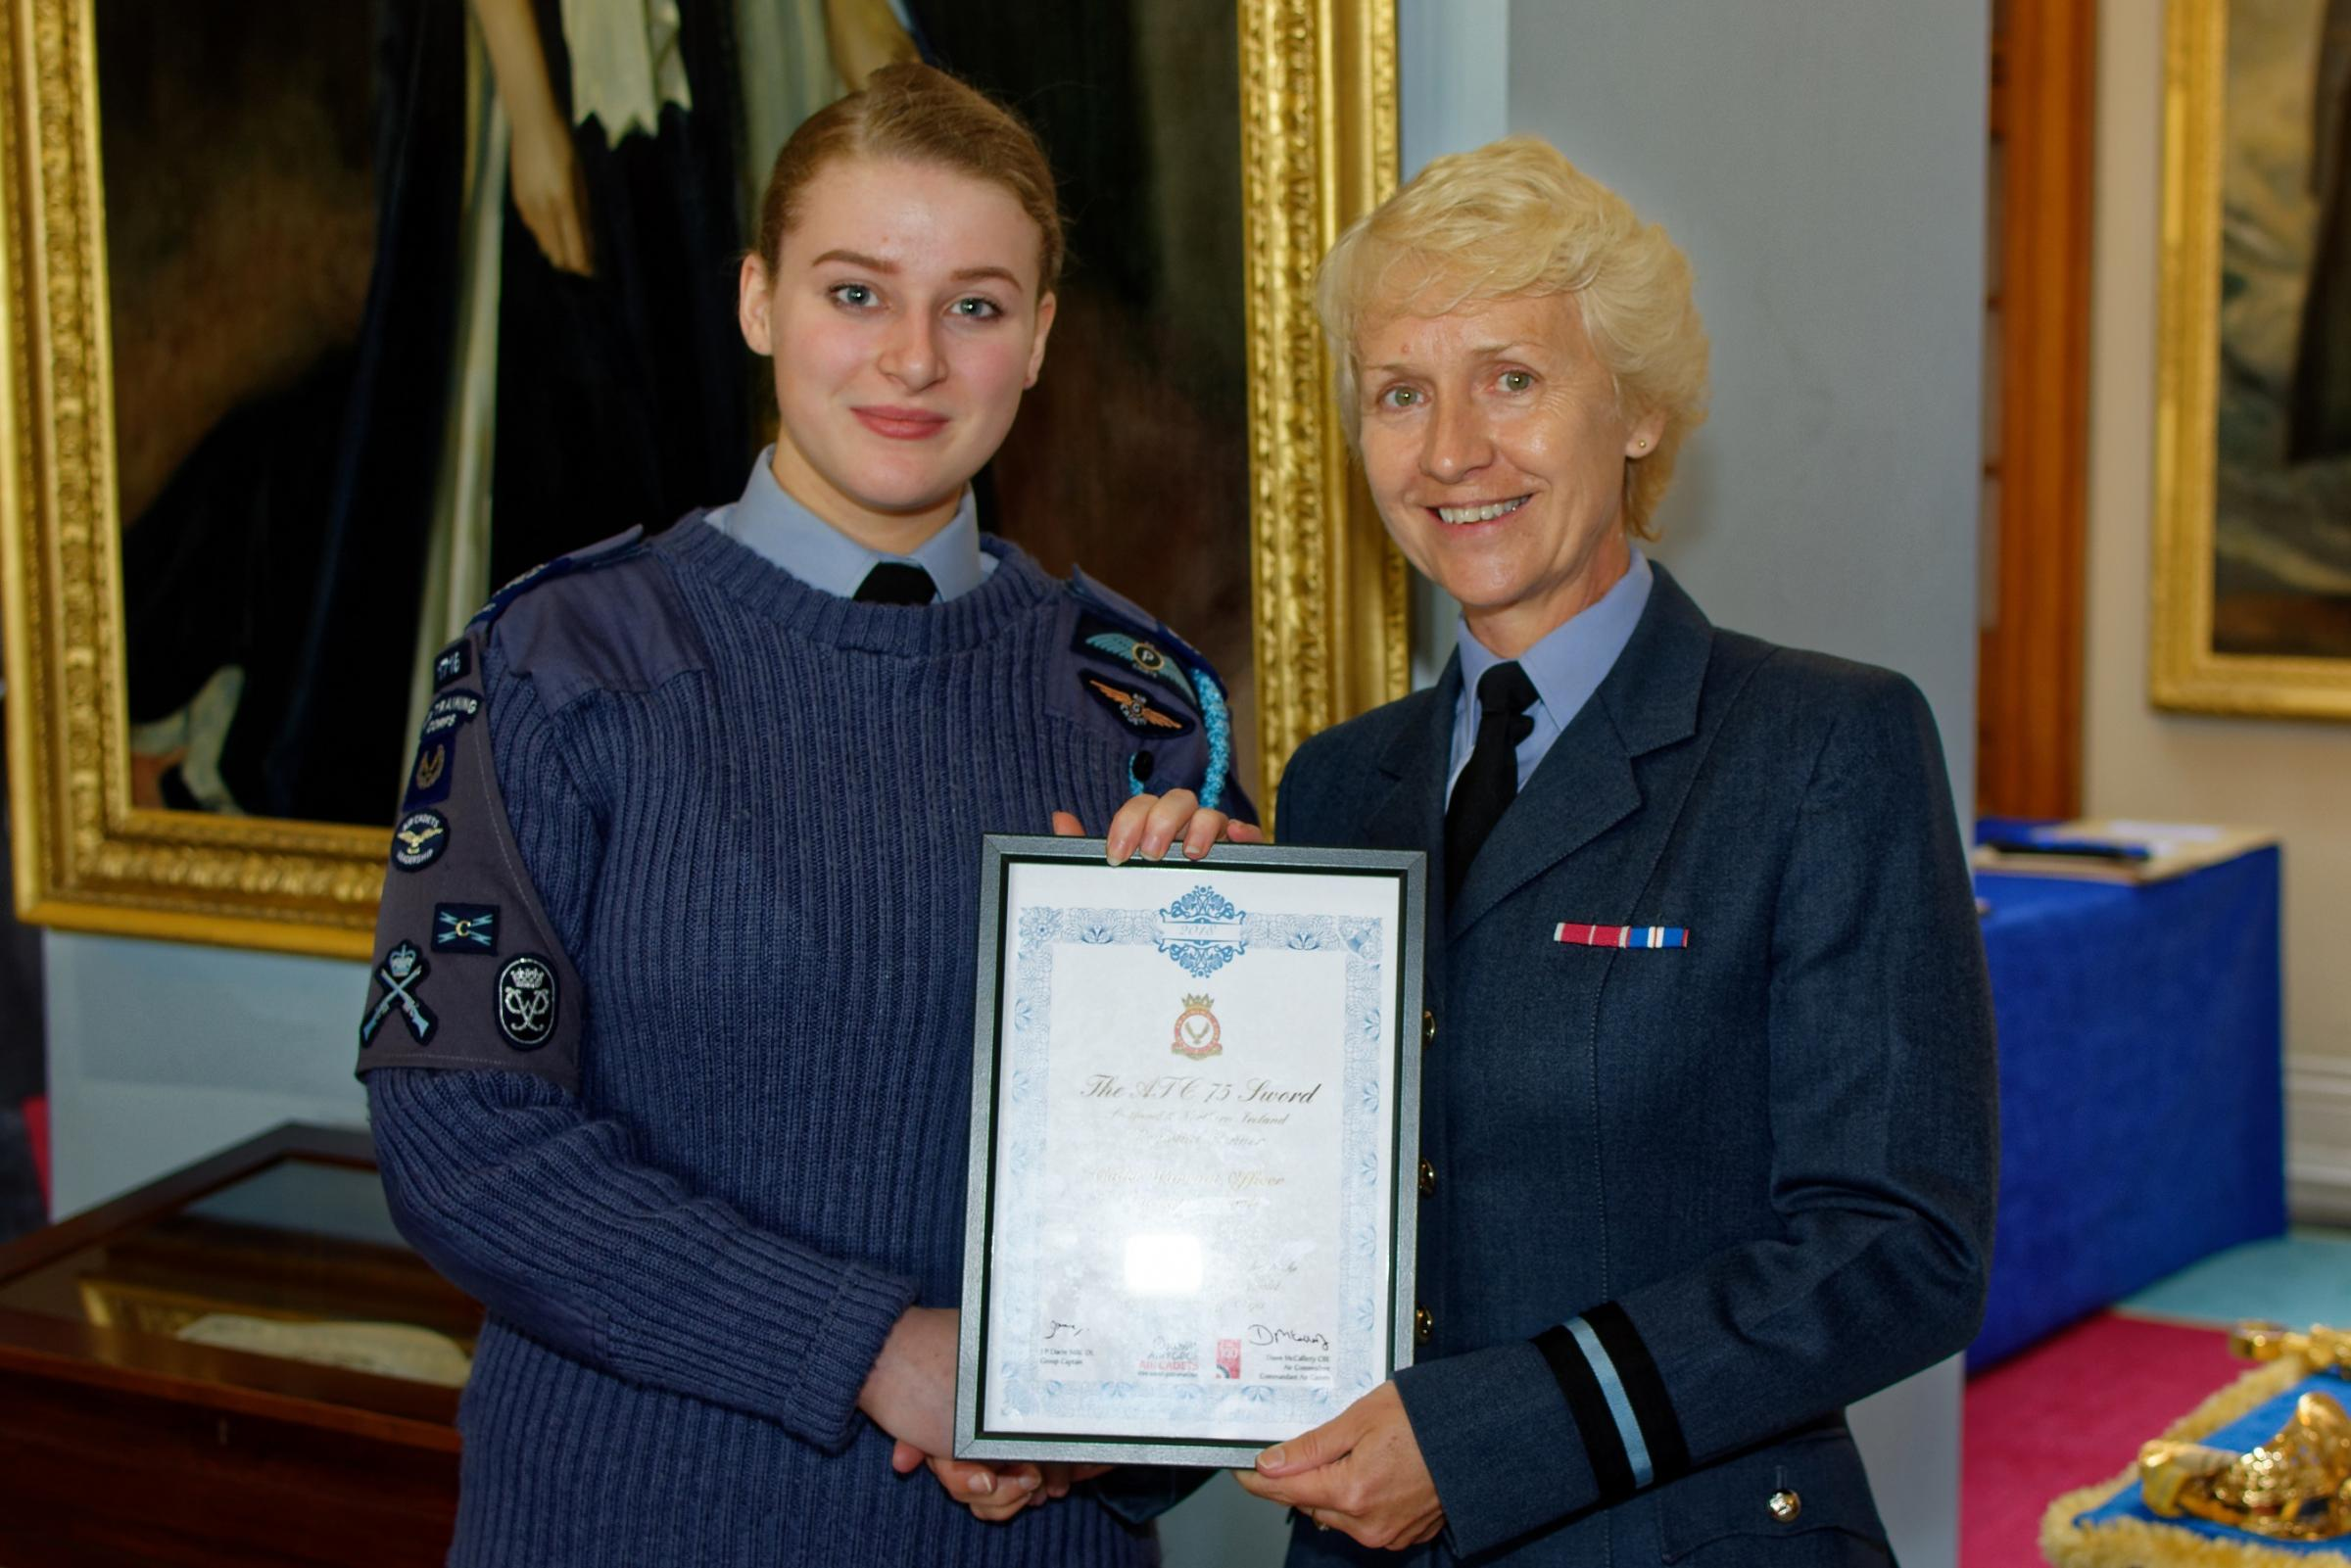 Lauren Cardwell with Commandant Air Cadets, Air Commodore McCafferty